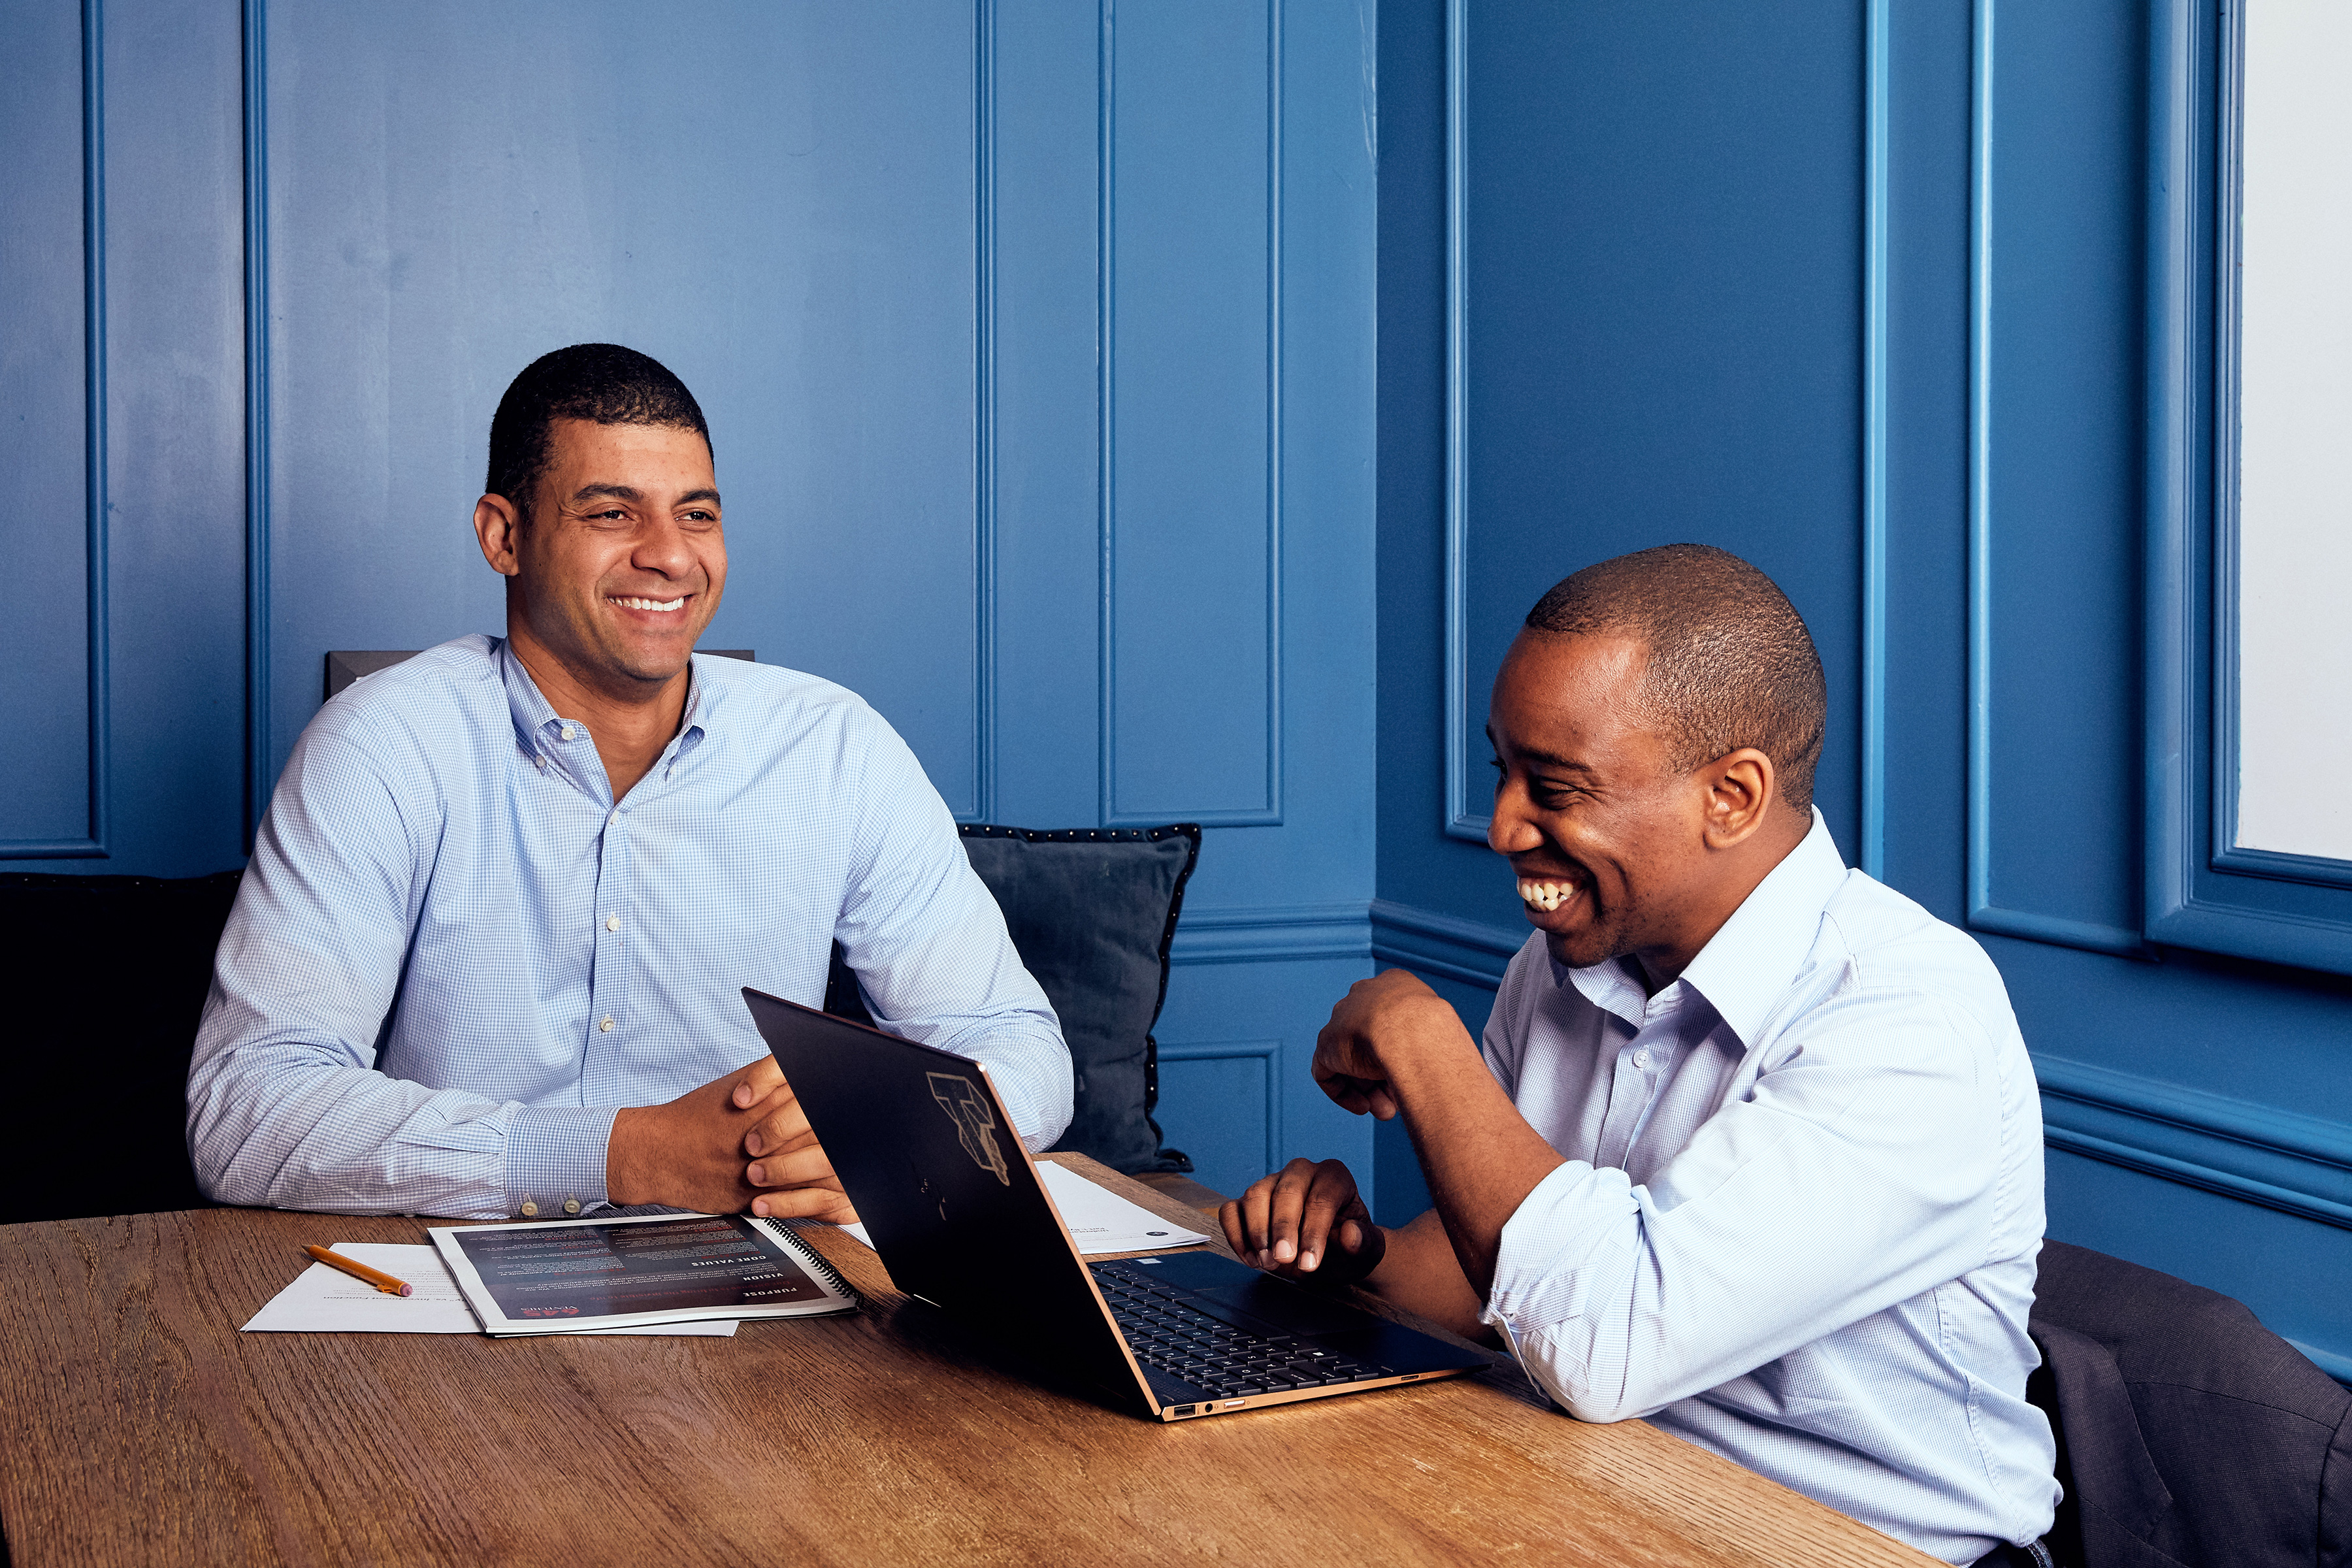 From humble beginnings, 645 Ventures founders find validation in new $40 million fund